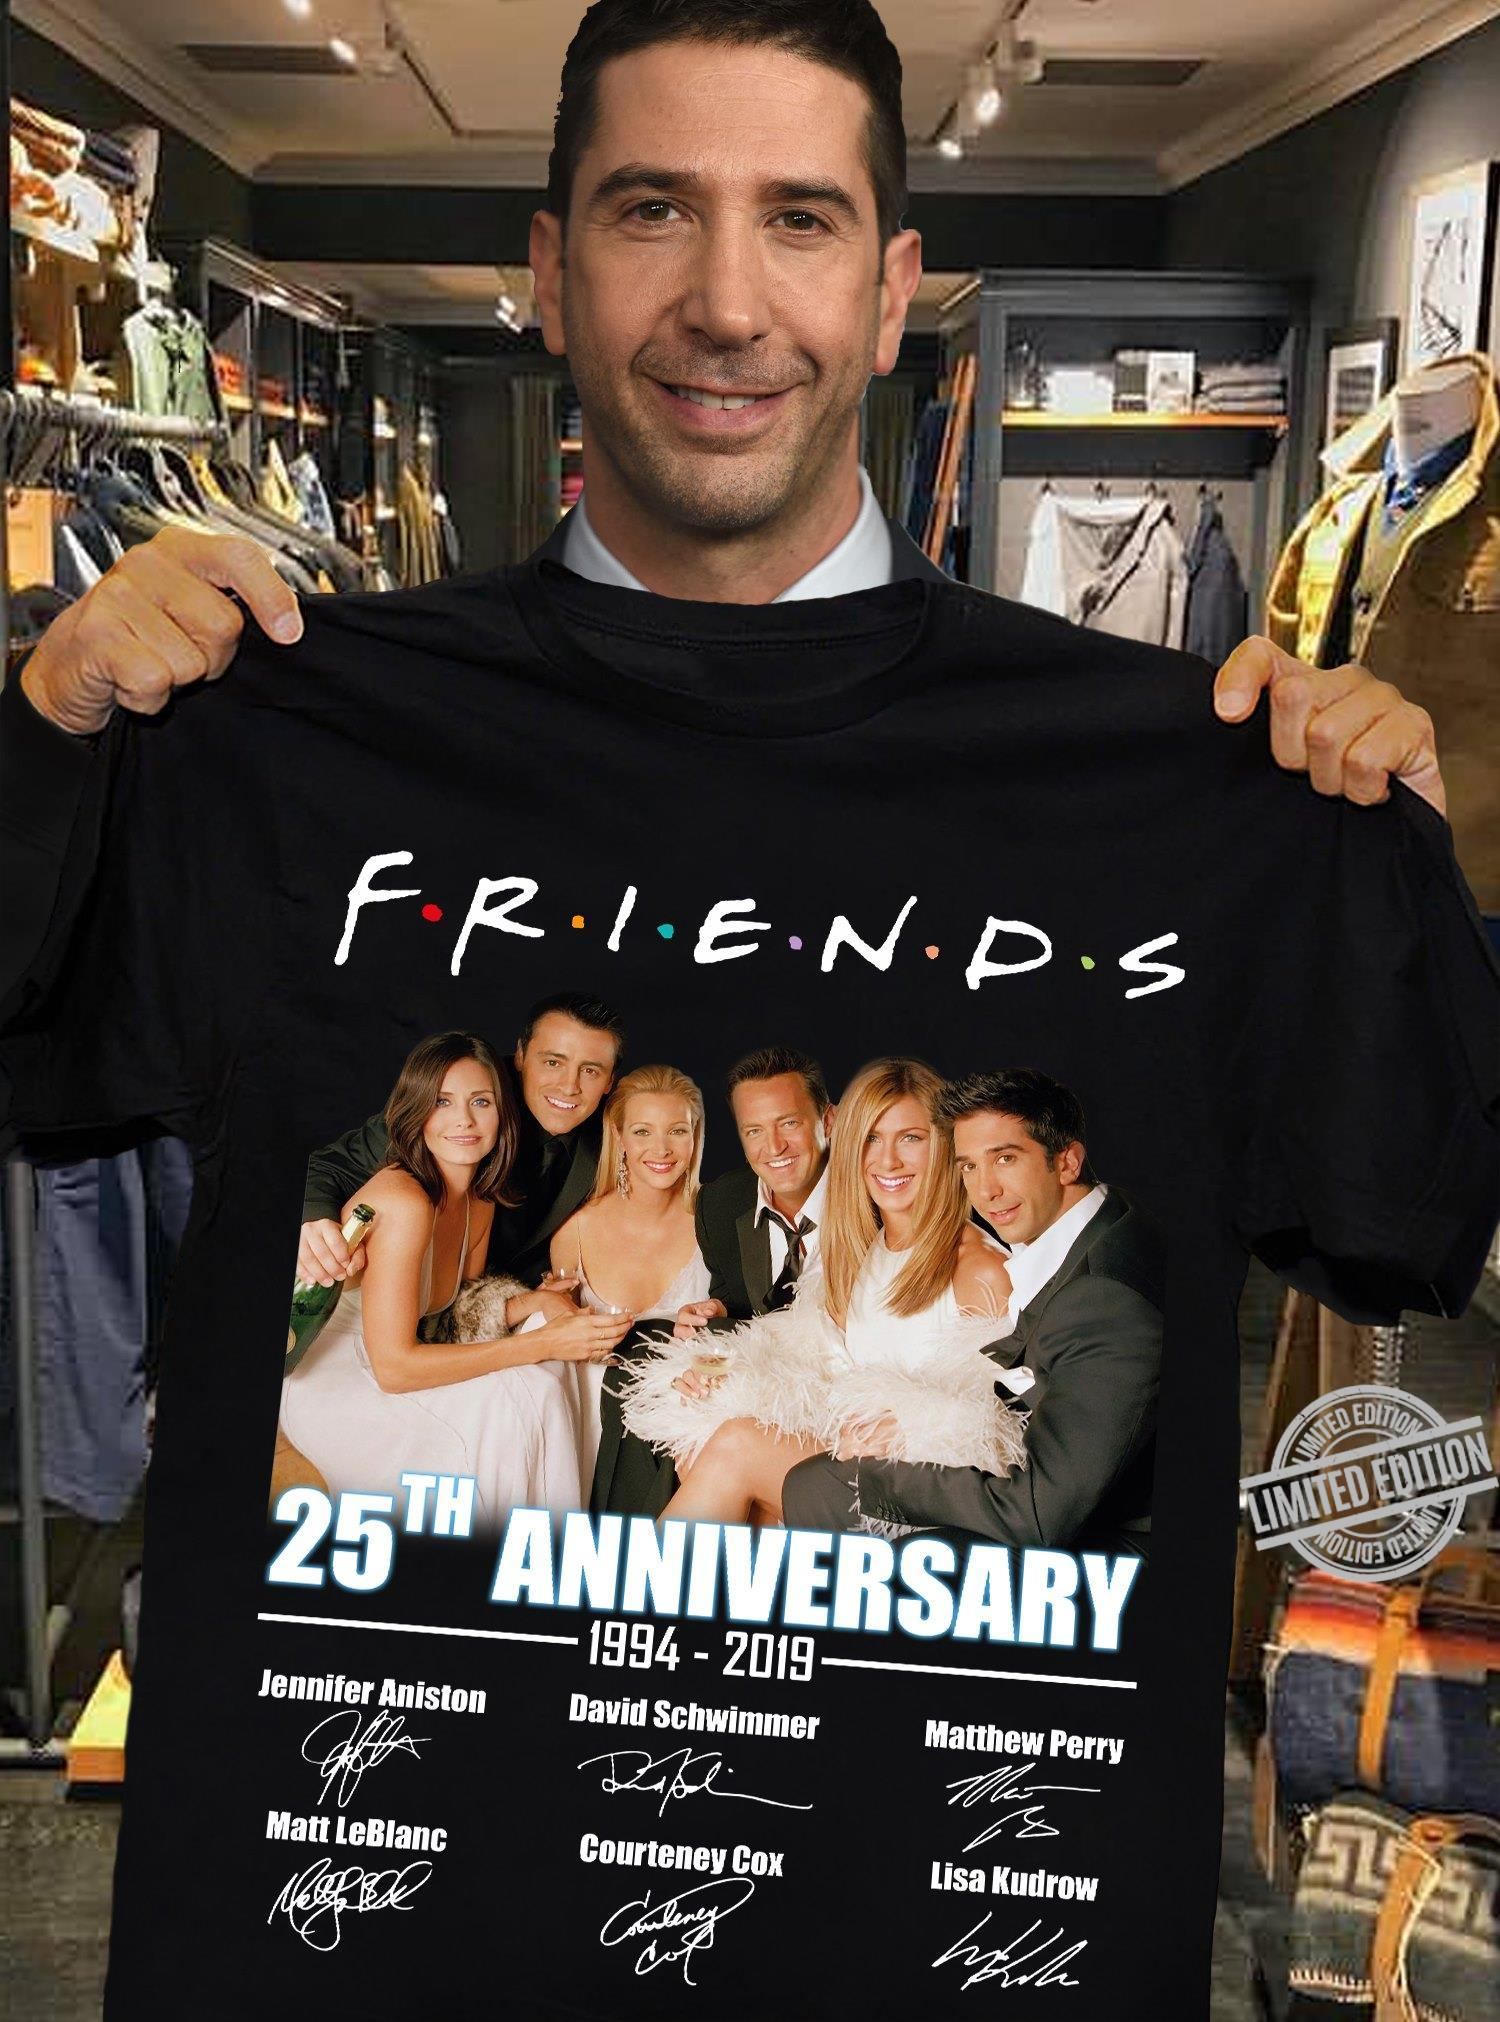 Friends 25th Anniversary 1994-2019 Shirt